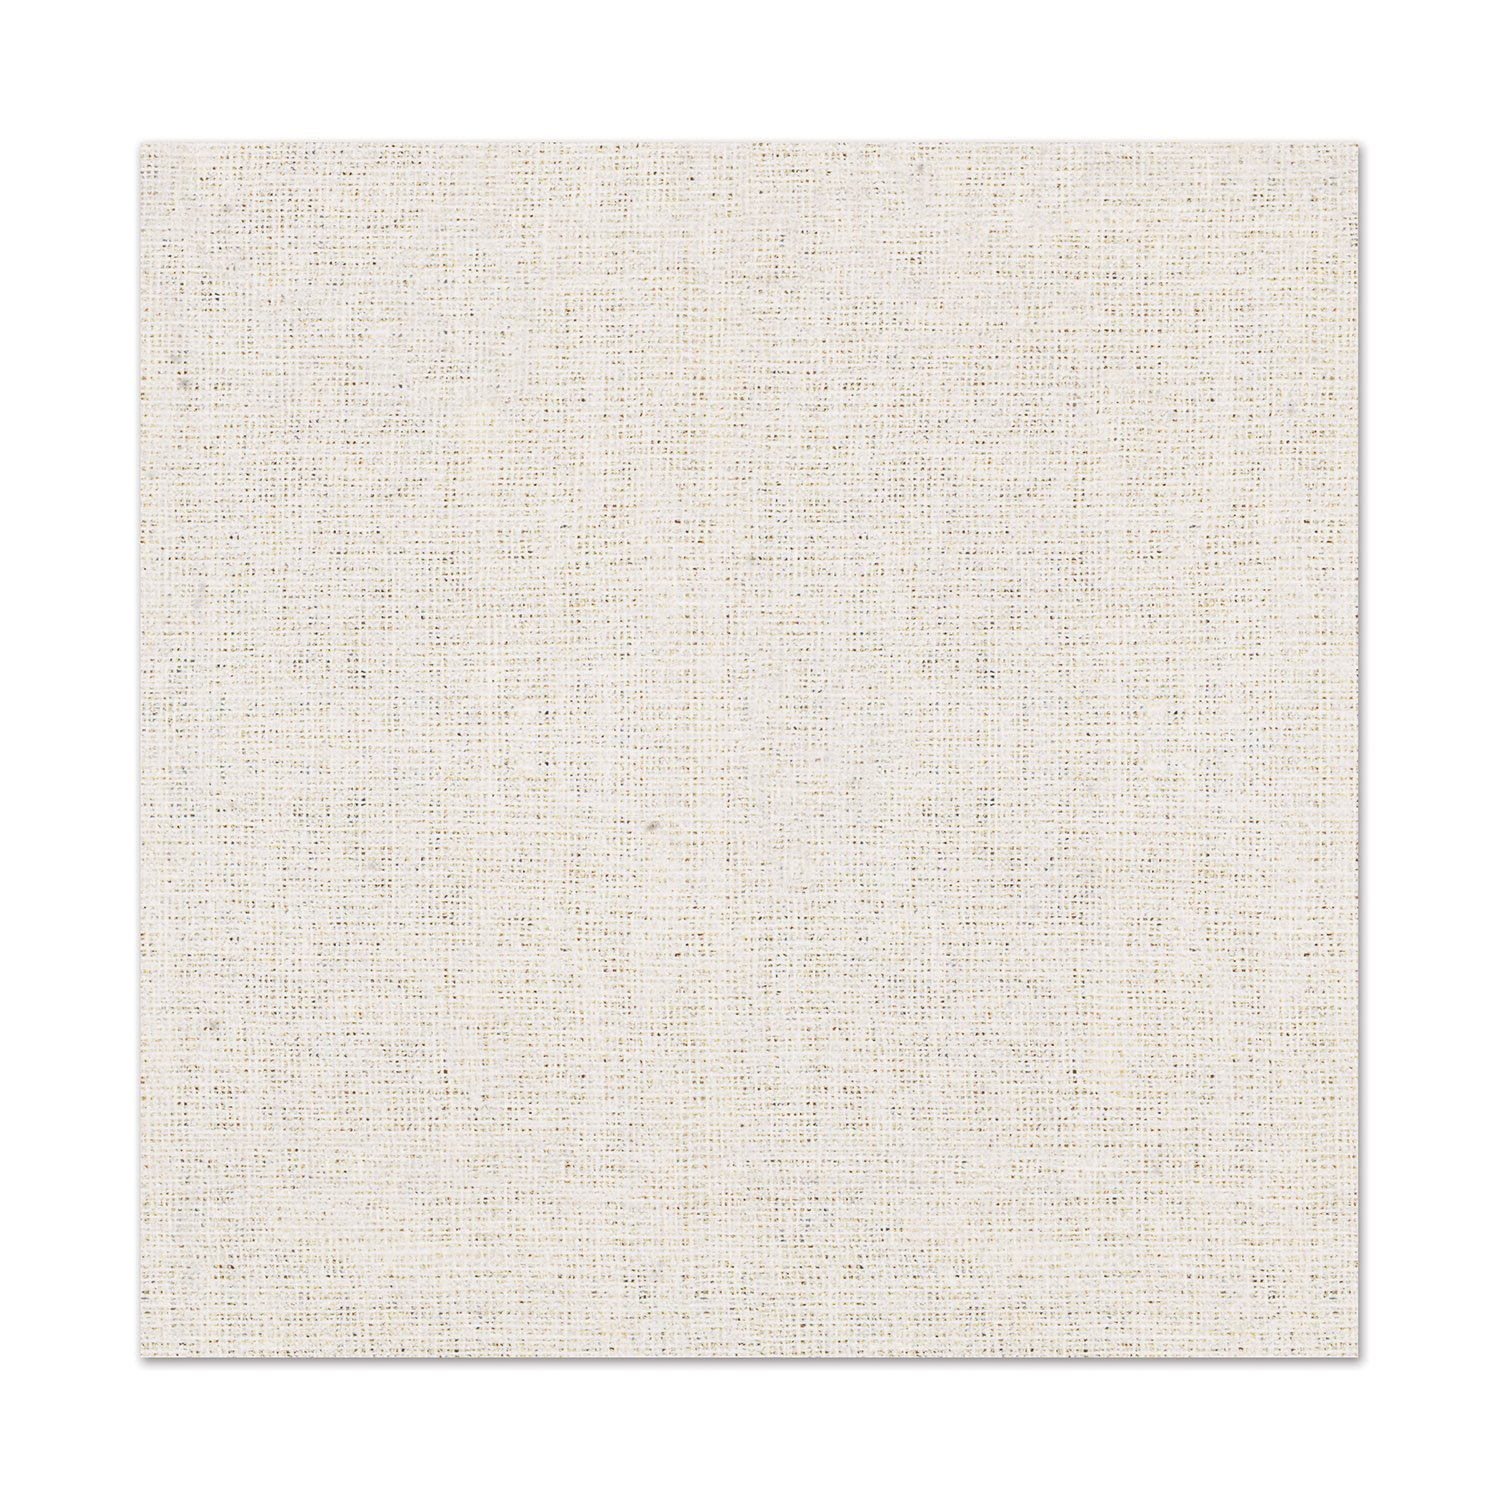 Beistle Club Pack Muslin Paper 2ply Paper Luncheon Napkins, Box Contains 192 Napkins